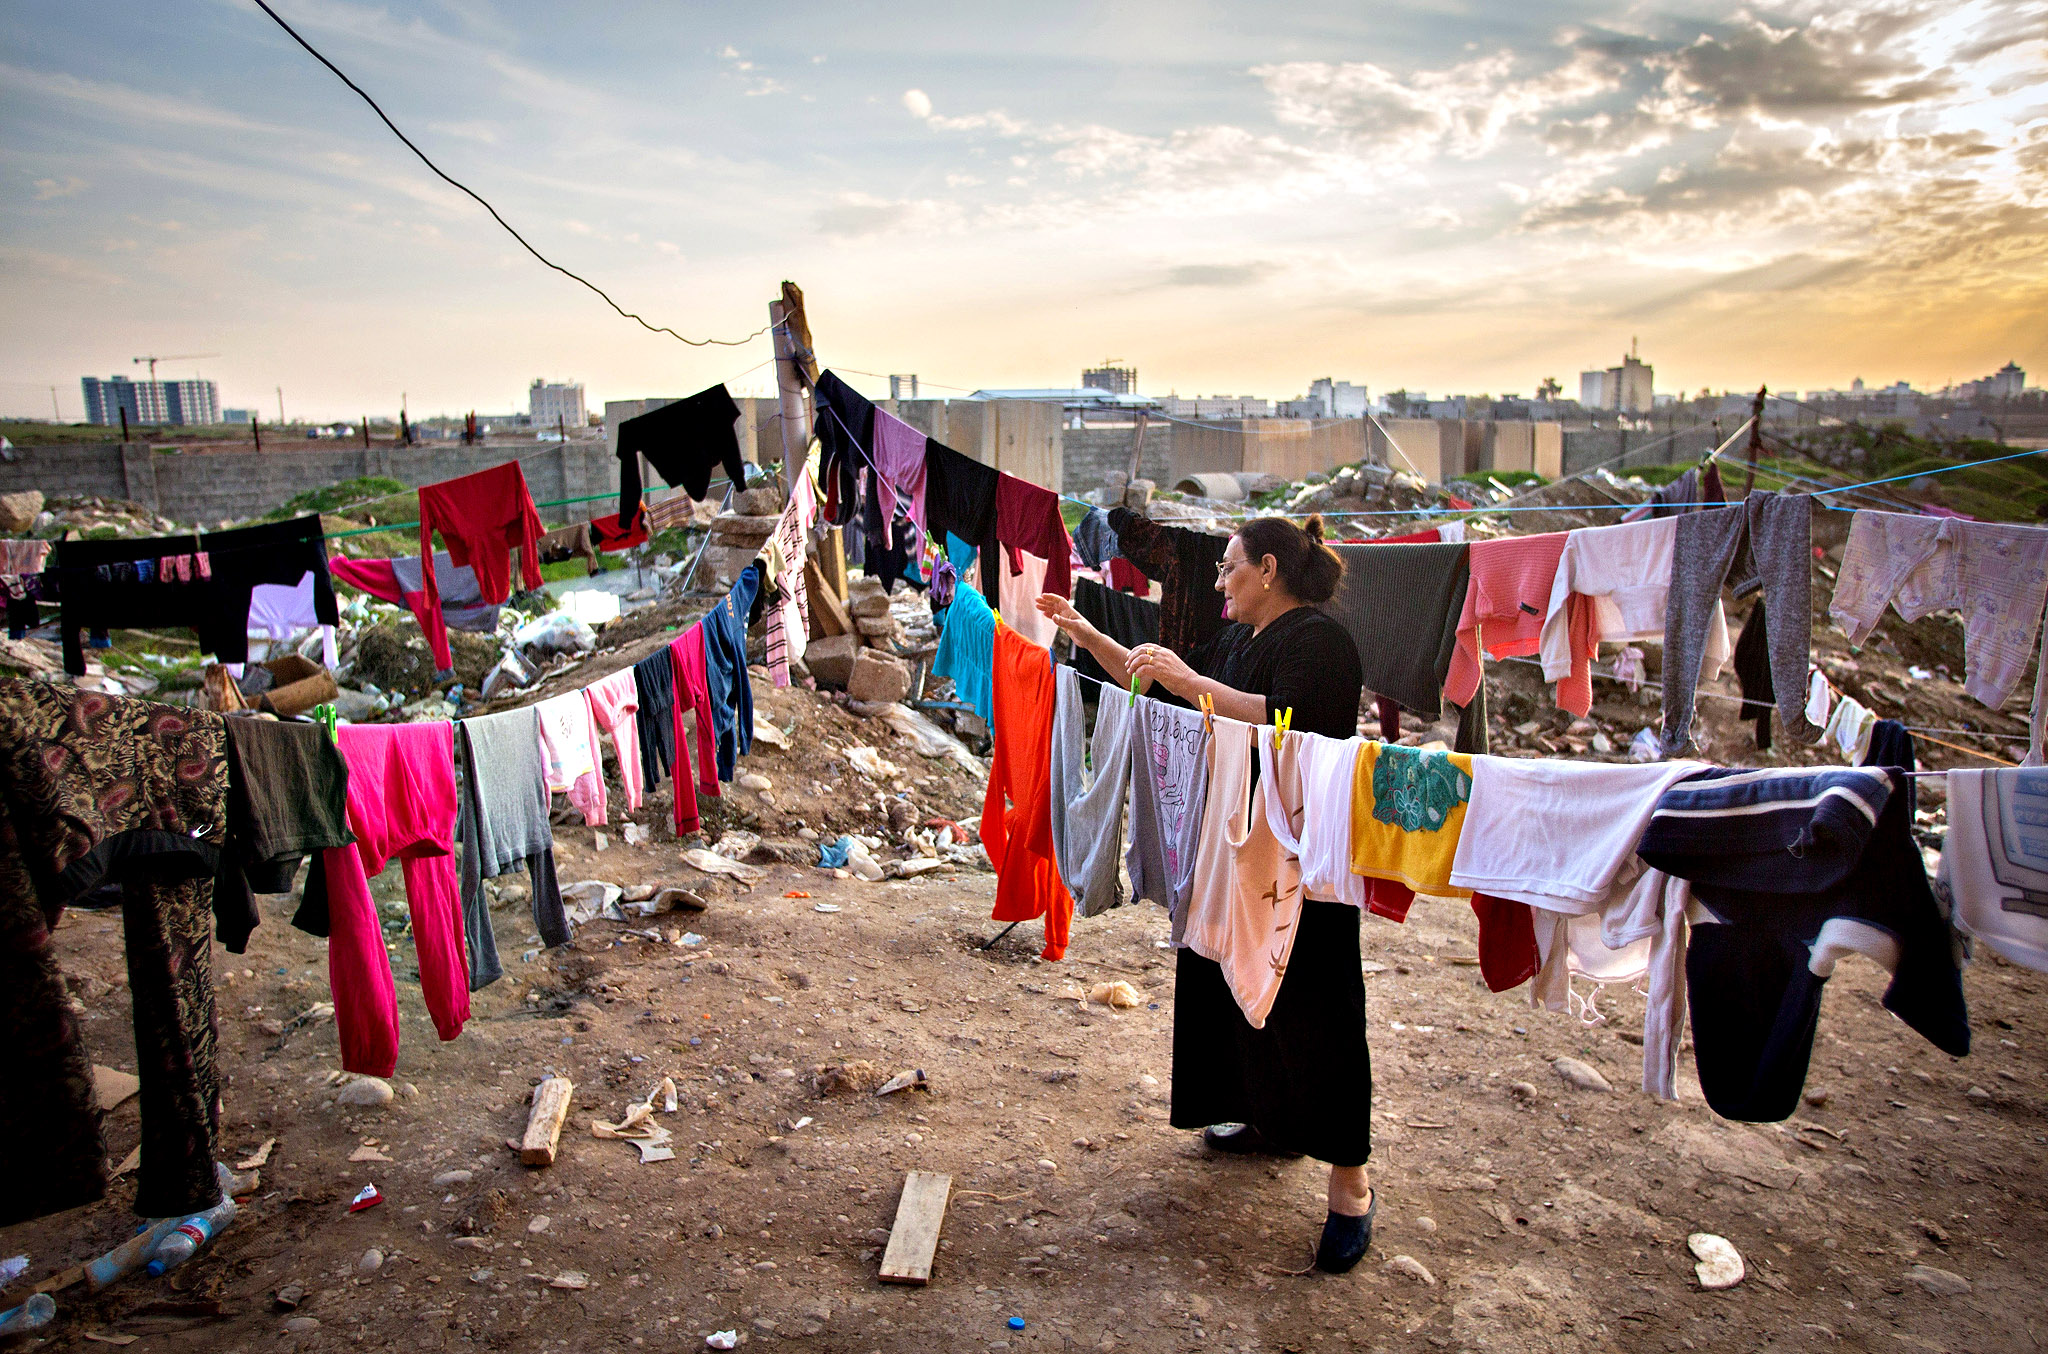 An Iraqi Christian, who fled from her home because of Islamic State's advance earlier this year, hangs up washed clothes to dry besides a displaced persons camp near Umm al-Nour Church, which is now home to hundreds of displaced Iraqi Christians in Erbil, Iraq.  Although the autonomous Kurdistan region in northern Iraq was already a refuge for an estimated 250,000 Syrian refugees, since the Islamic State began its onslaught on Iraq in June, Kurdistan has also taken in a more than one and a half million displaced people. Many have been placed in purpose-built refugee camps but the huge numbers mean thousands of others are forced to live in un-finished buildings or inadequate, makeshift shelters and as winter in the region closes in, there are growing concerns for the welfare of the refugees who, while their homes are still in ISIL controlled territory, have no realistic prospect of returning to them.